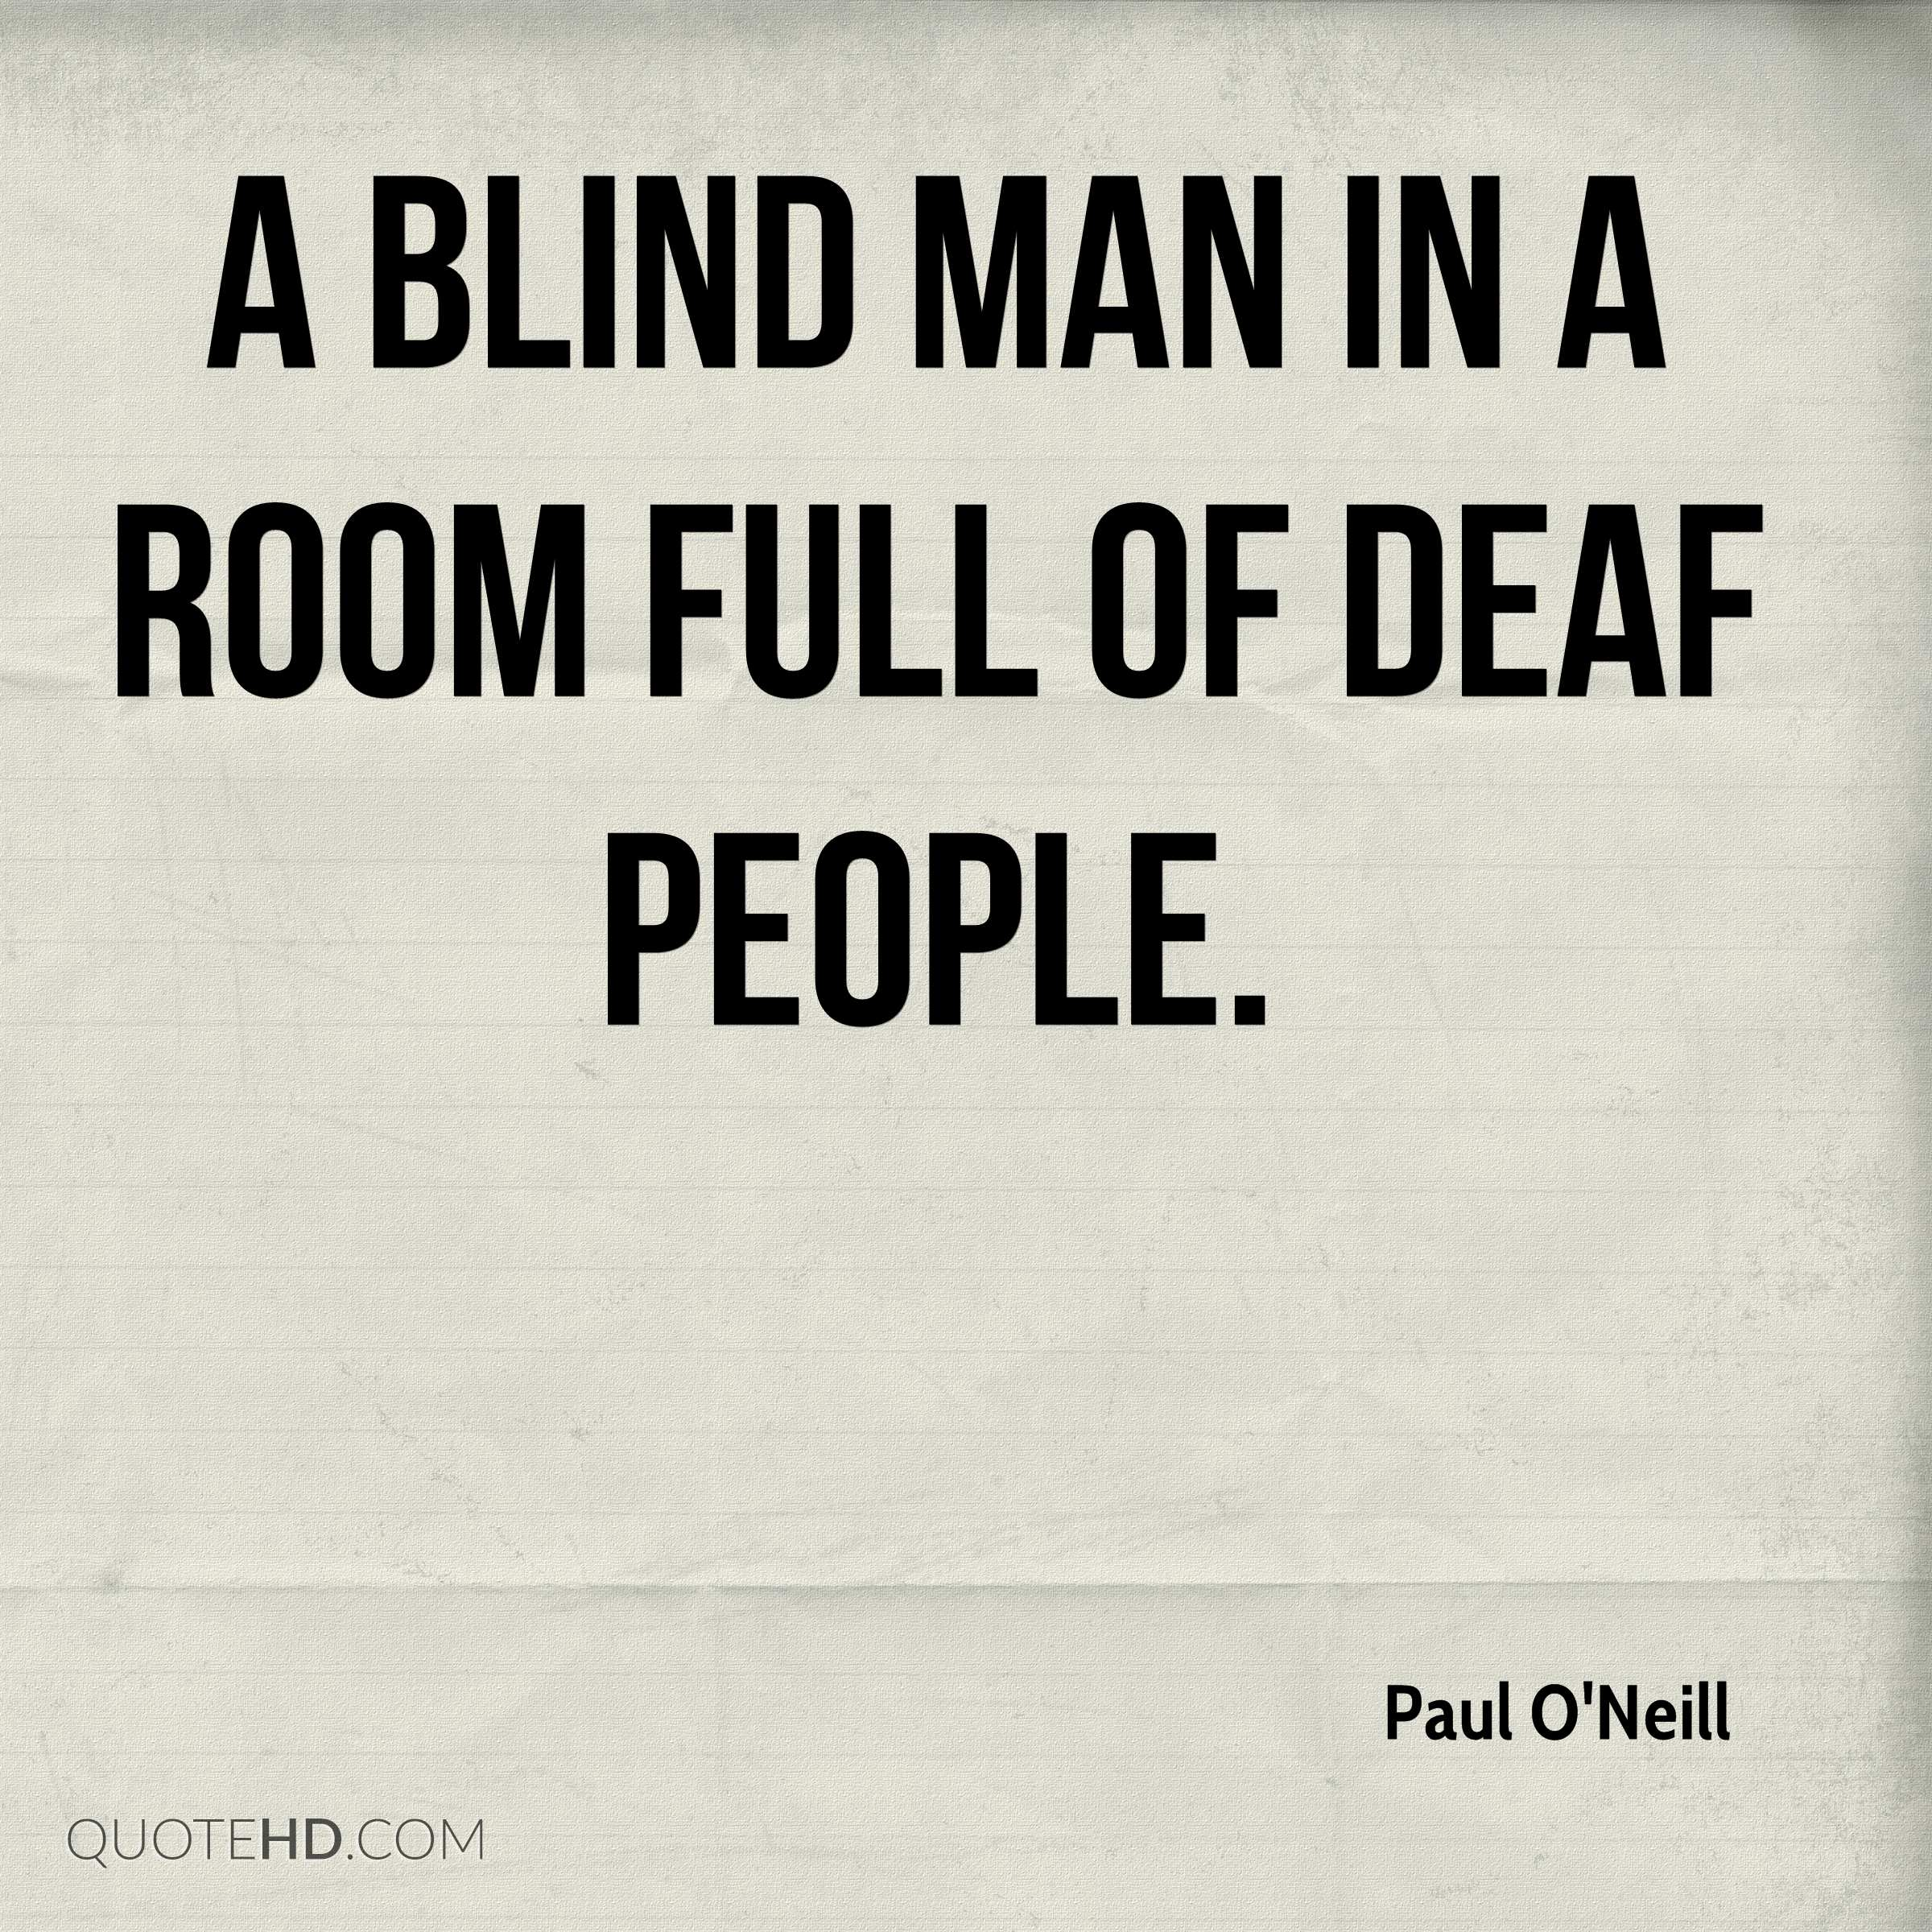 Blind Quotes New Paul O'neill Quotes  Quotehd